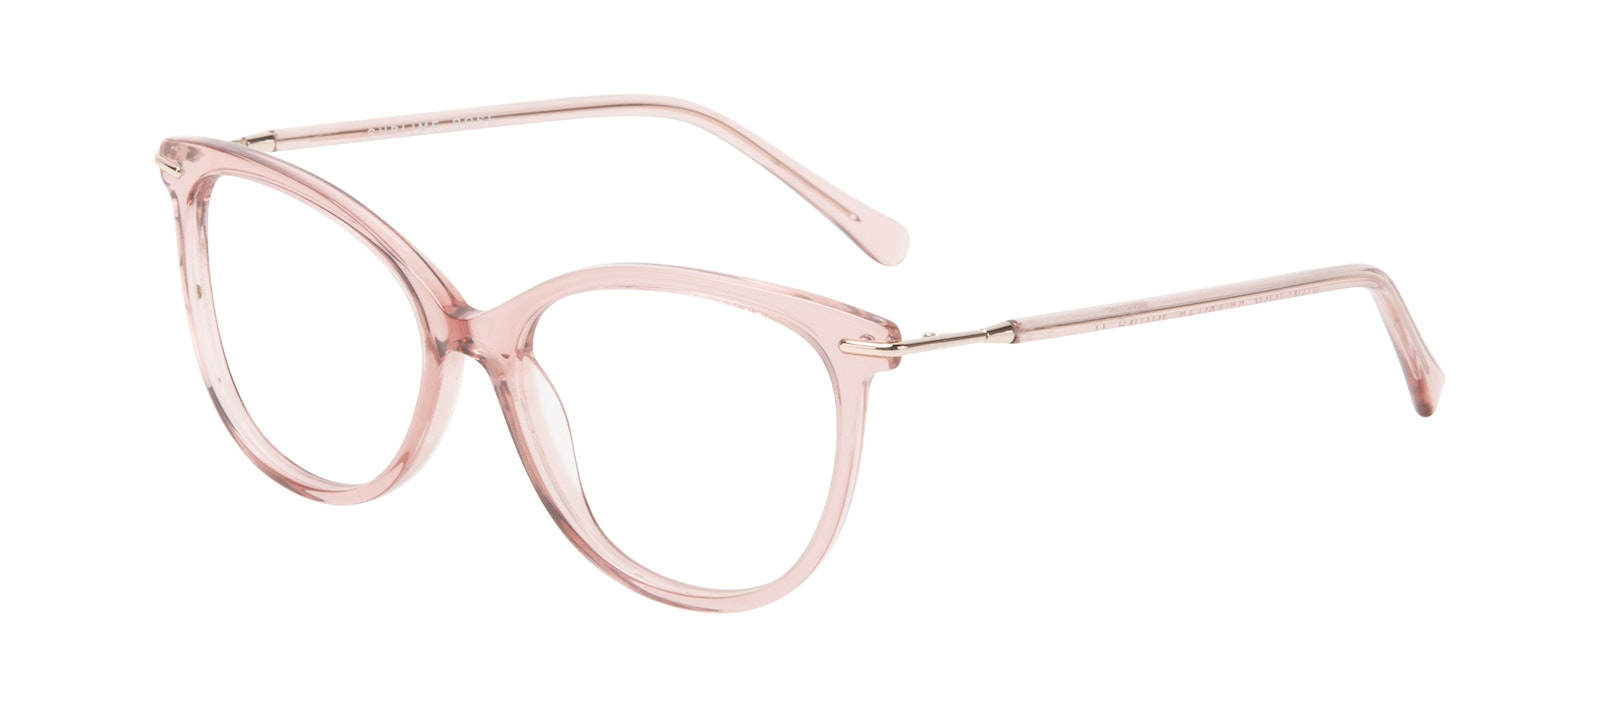 Affordable Fashion Glasses Round Eyeglasses Women Sublime Rose Tilt